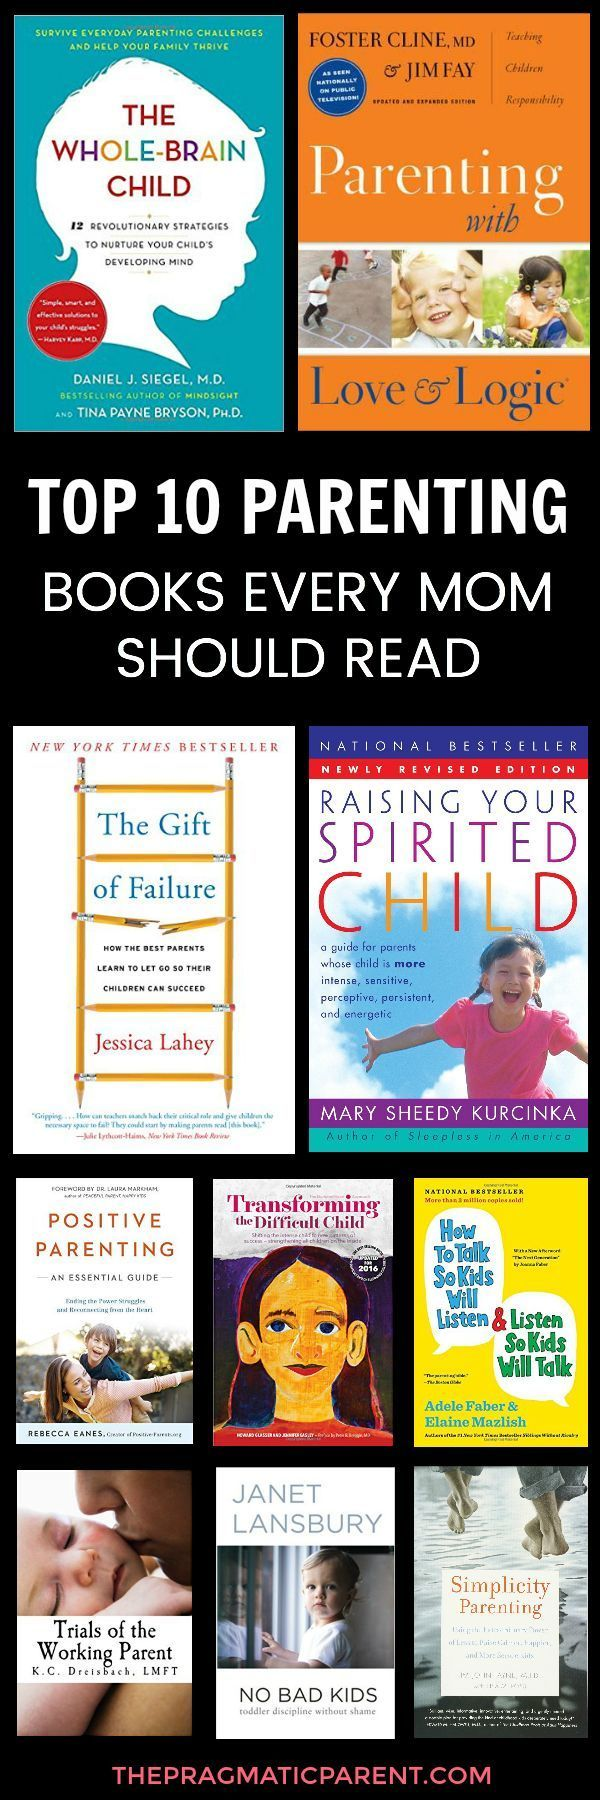 The 10 best parenting books every Mom needs to read. Helpful parenting advice for parents with a positive parenting approach and heart-centered focus on motherhood, parenting and positive discipline. These are the top 10 parenting books for parents.